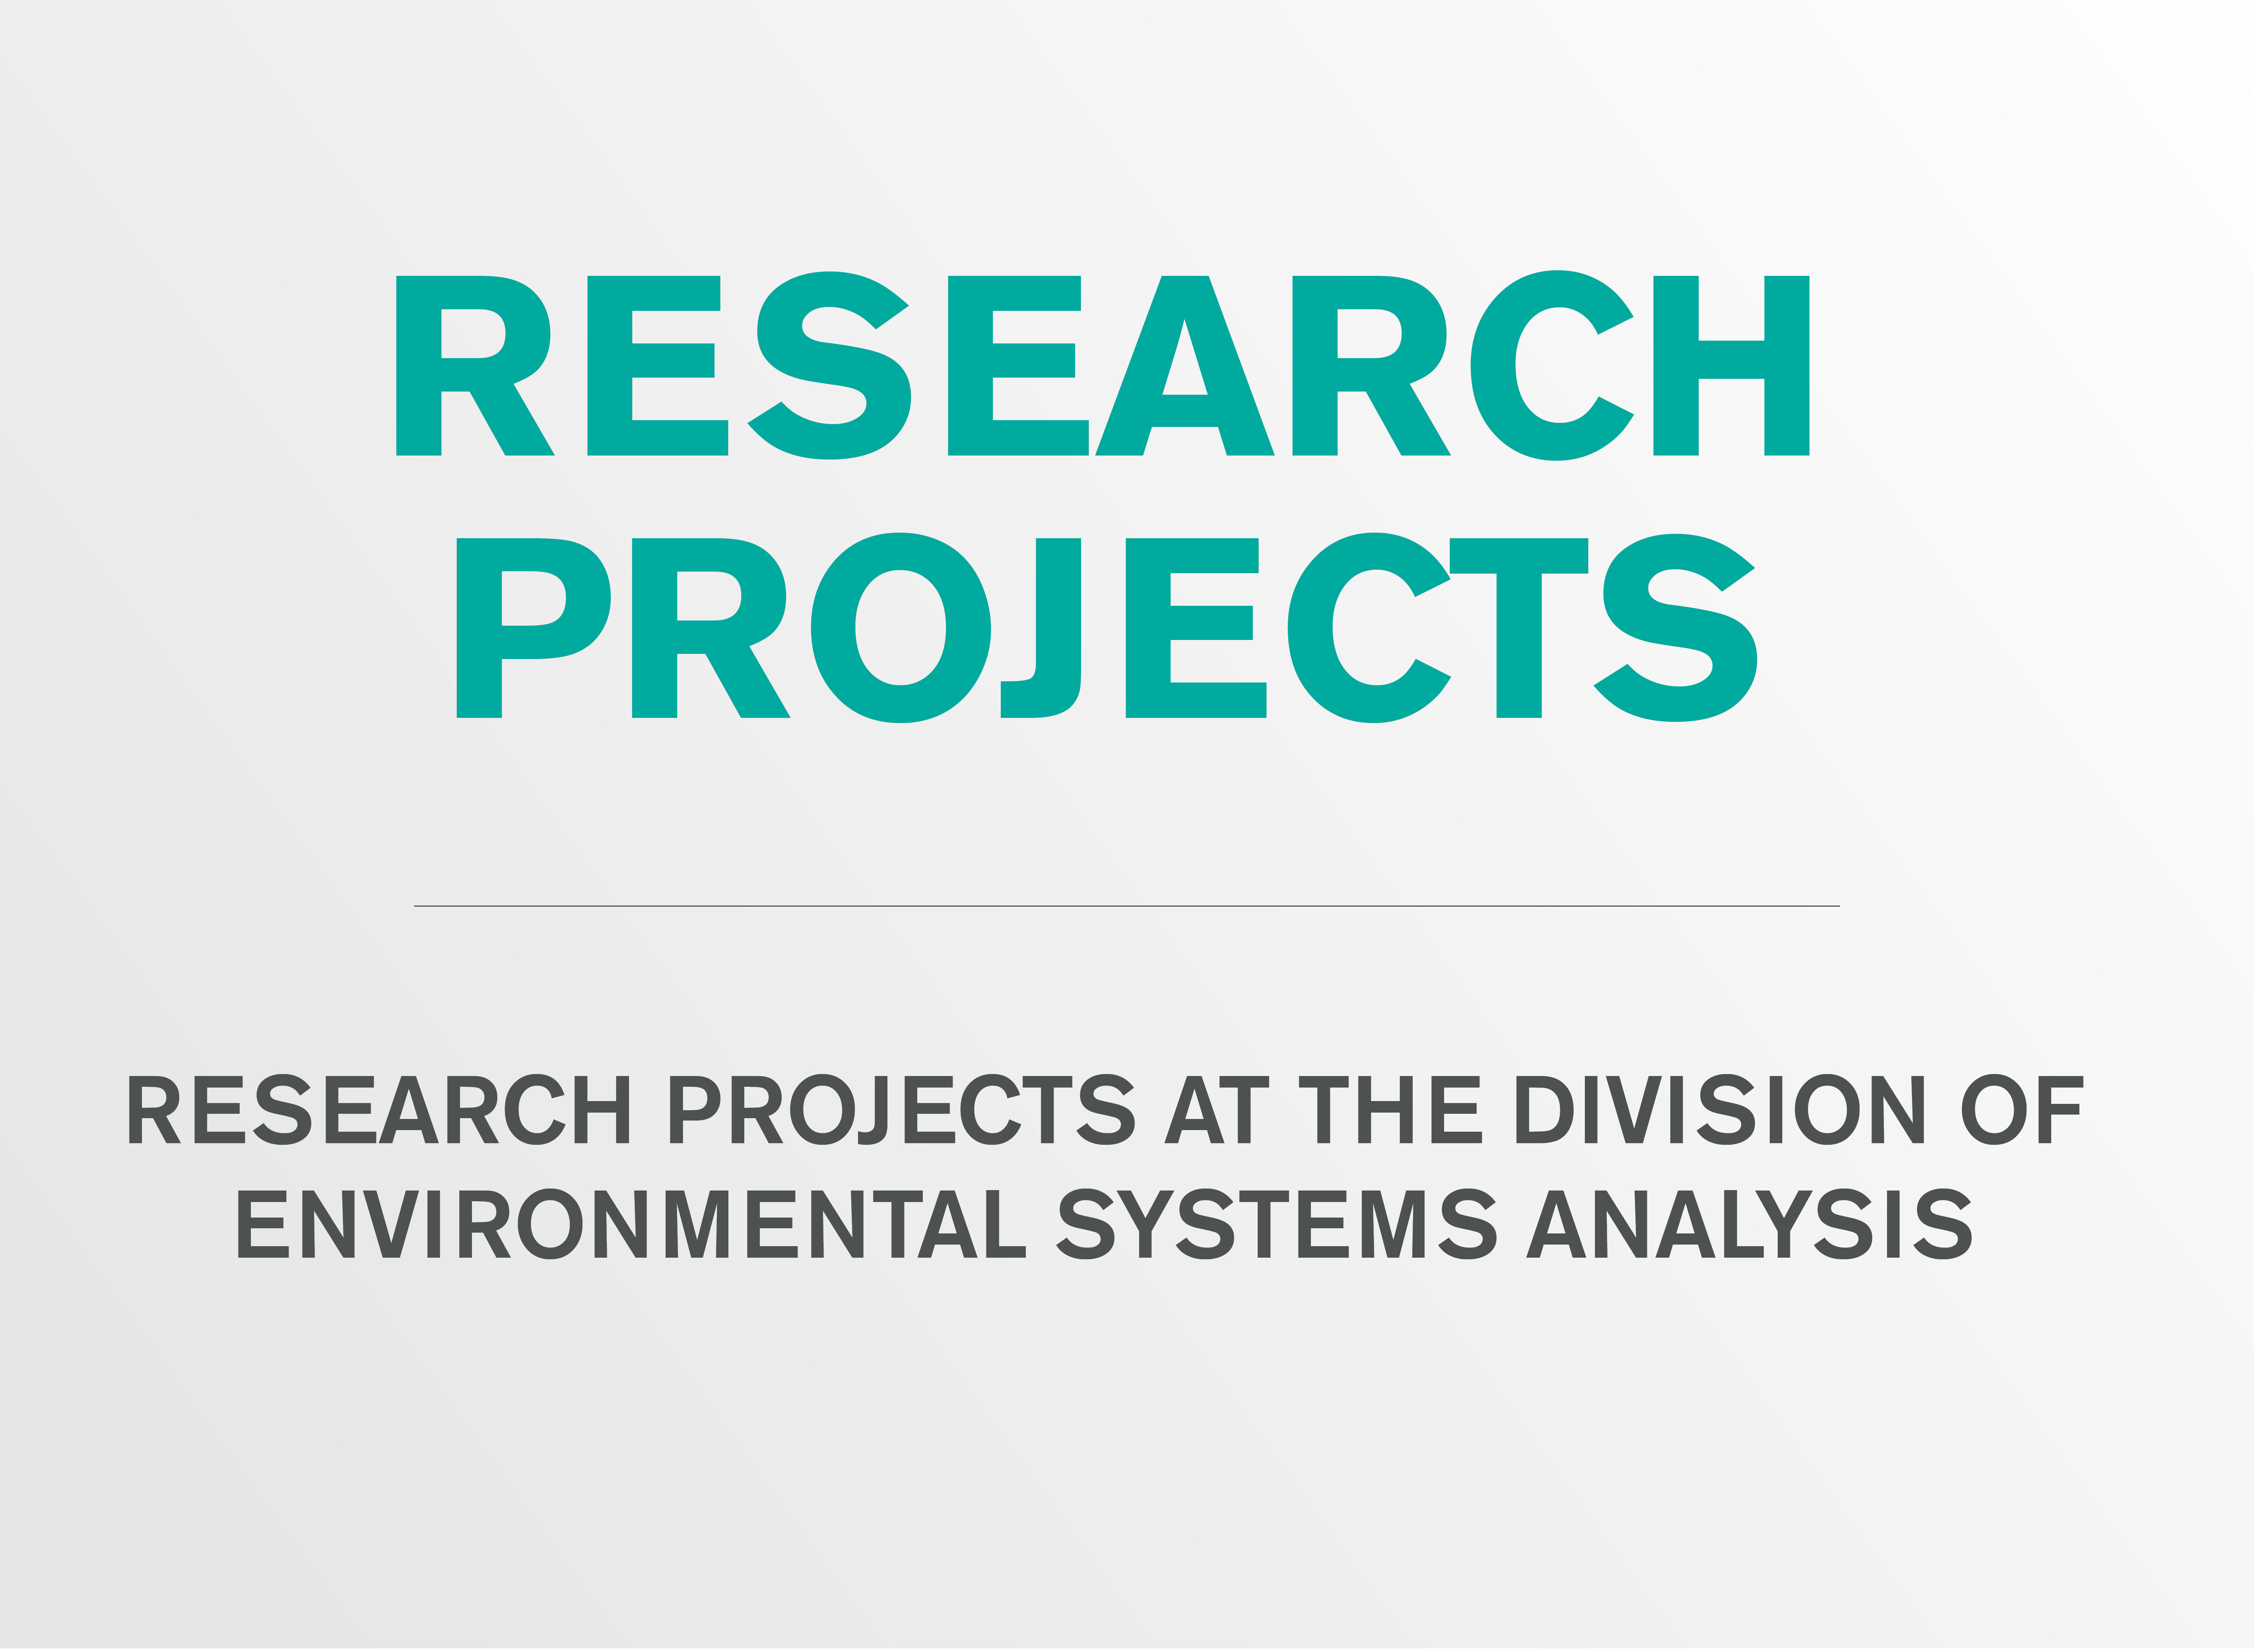 Research projects at the division of Environmental Systems Analysis